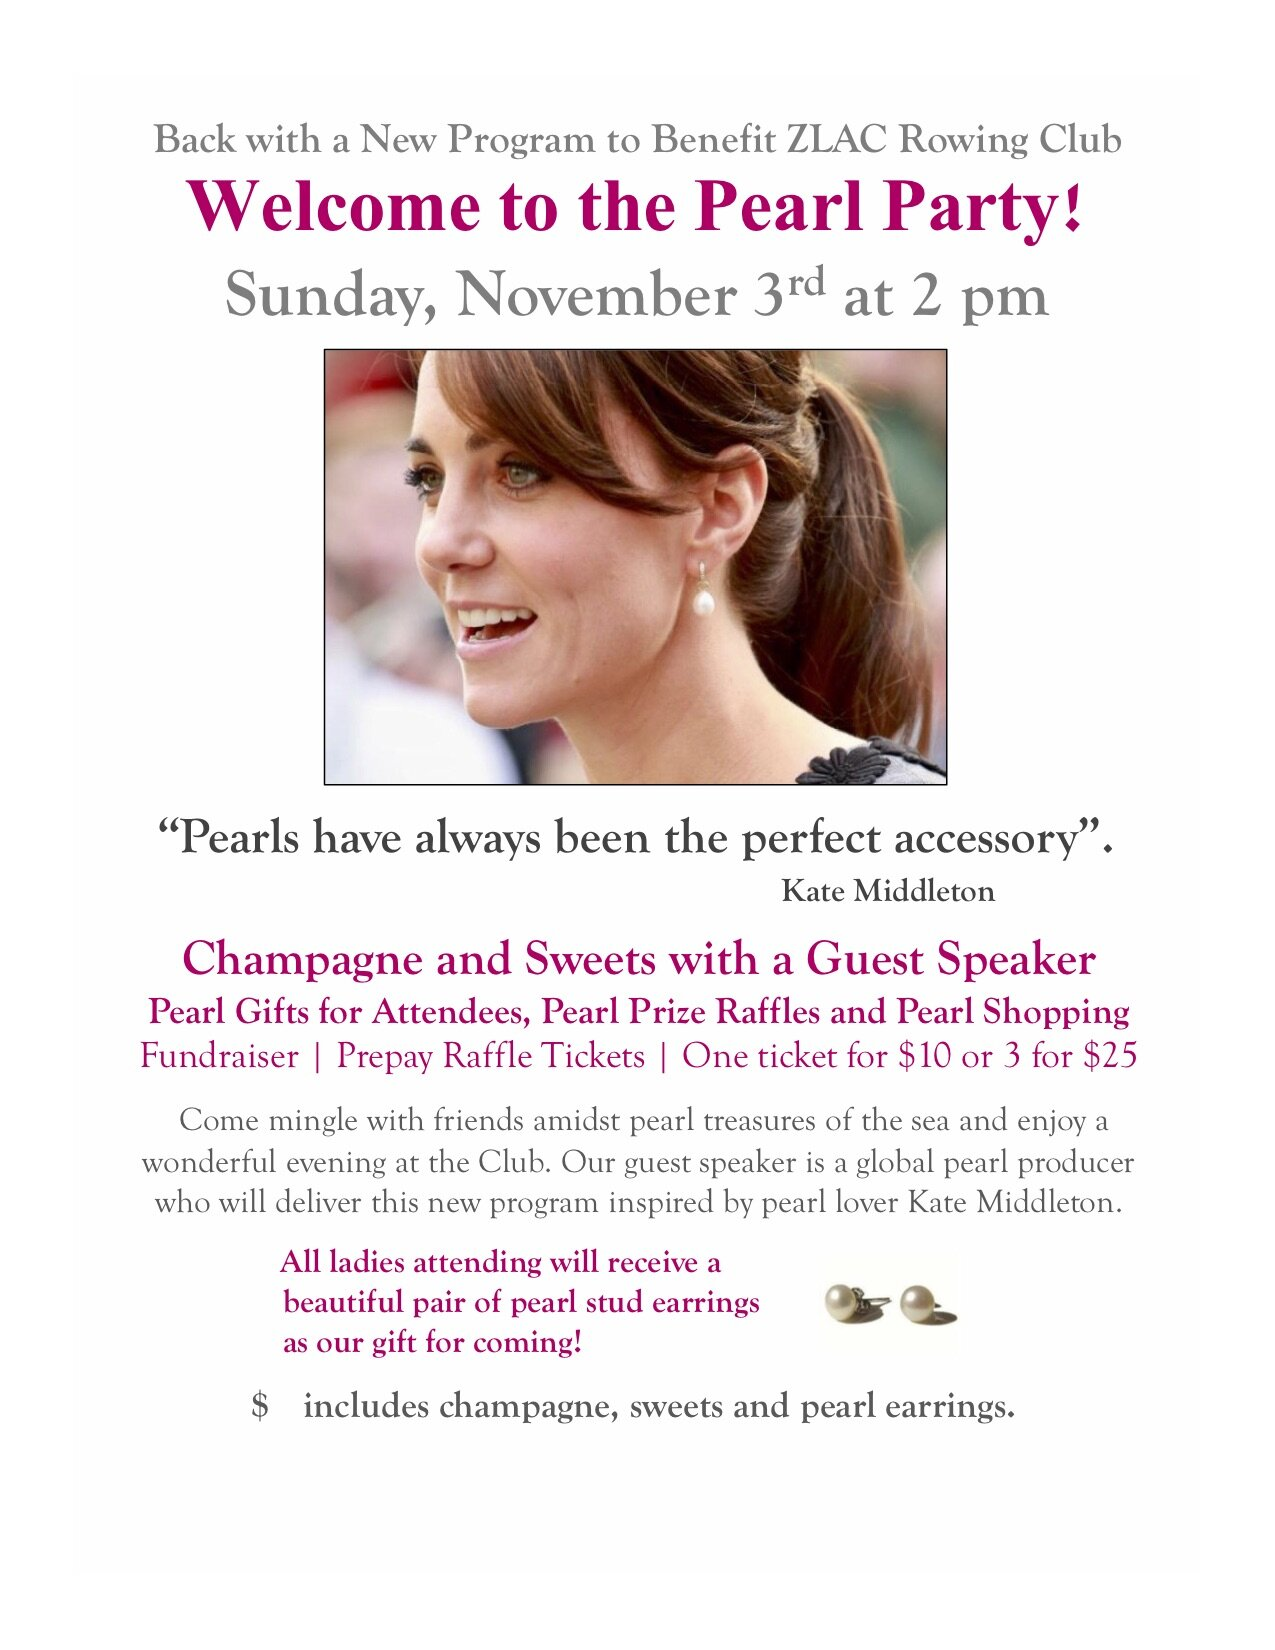 Pearl Party Invitation 2019.jpg